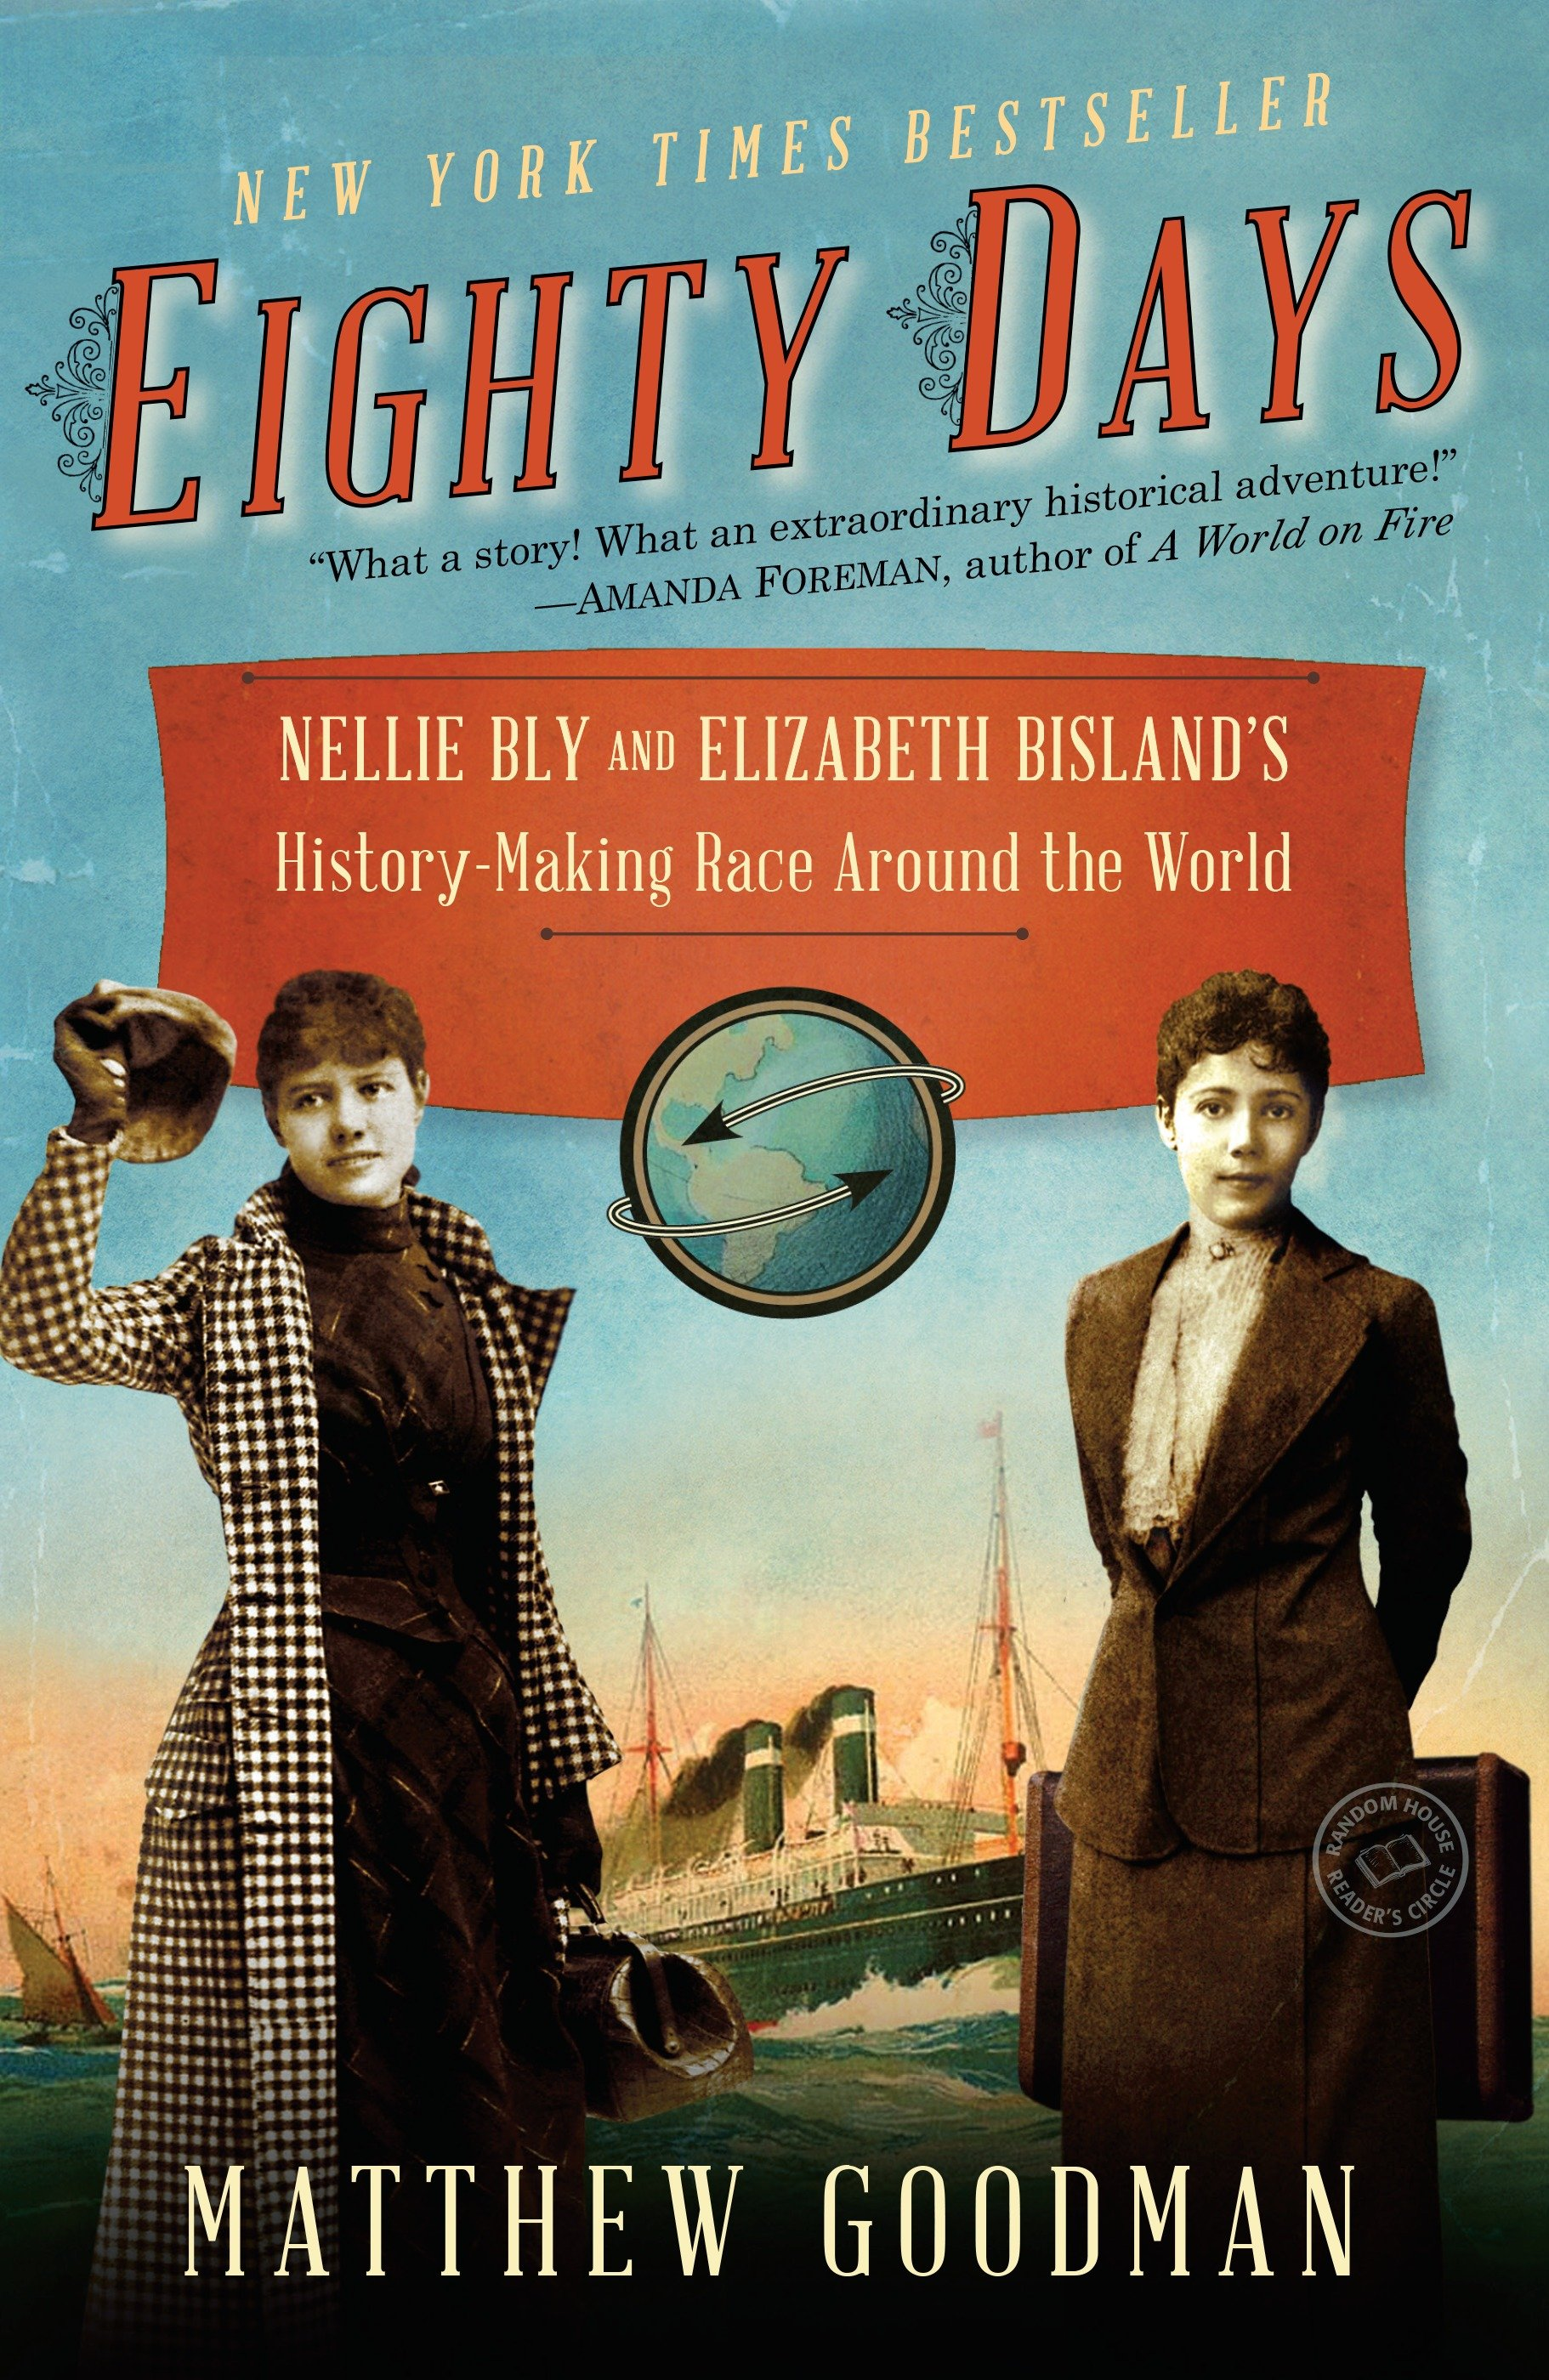 Eighty days Nellie Bly and Elizabeth Bisland's history-making race around the world